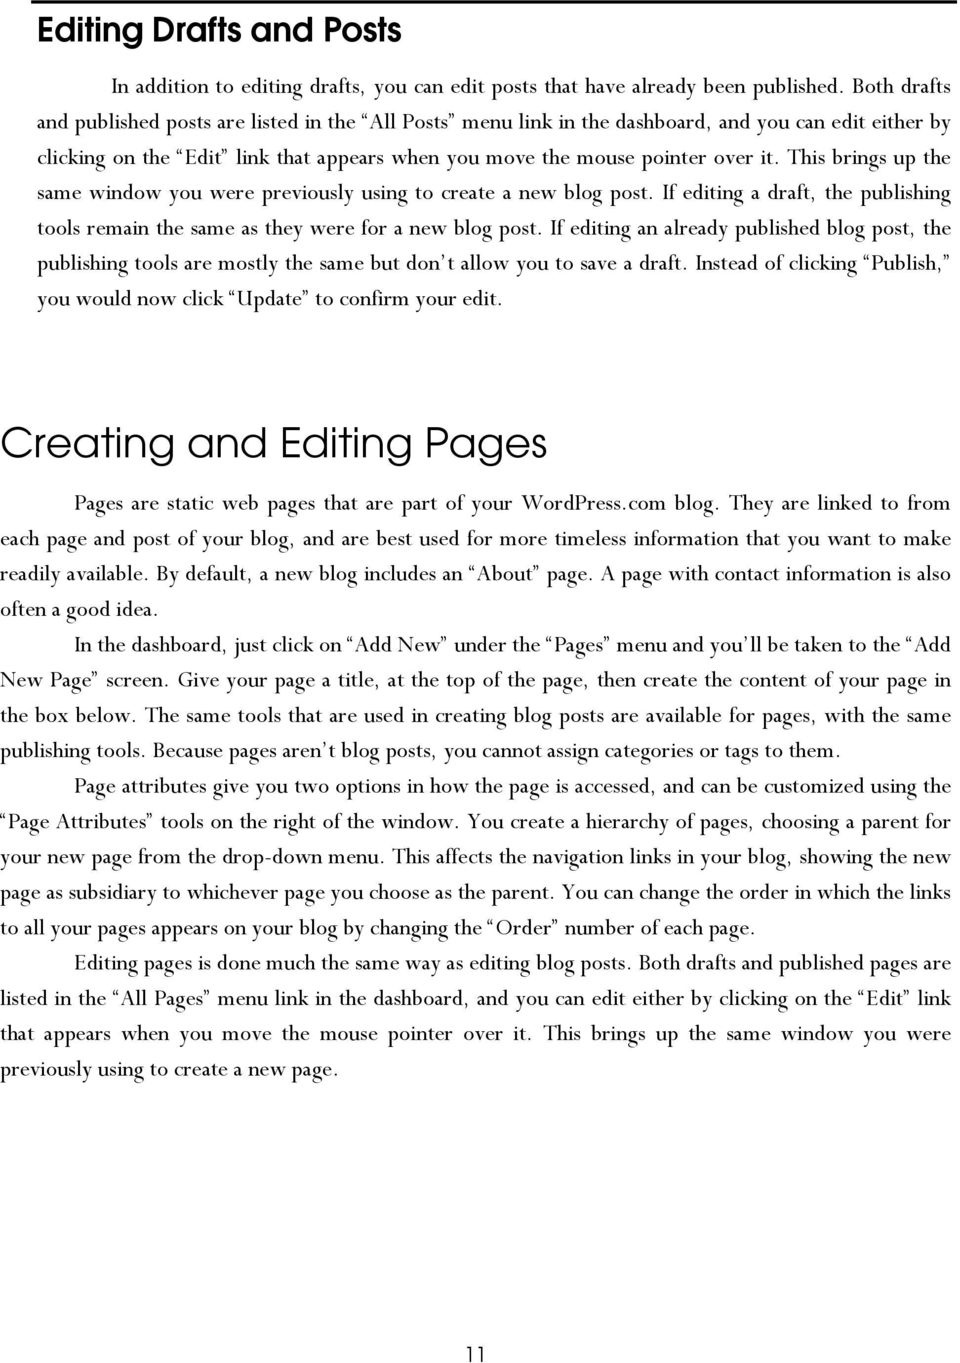 This brings up the same window you were previously using to create a new blog post. If editing a draft, the publishing tools remain the same as they were for a new blog post.